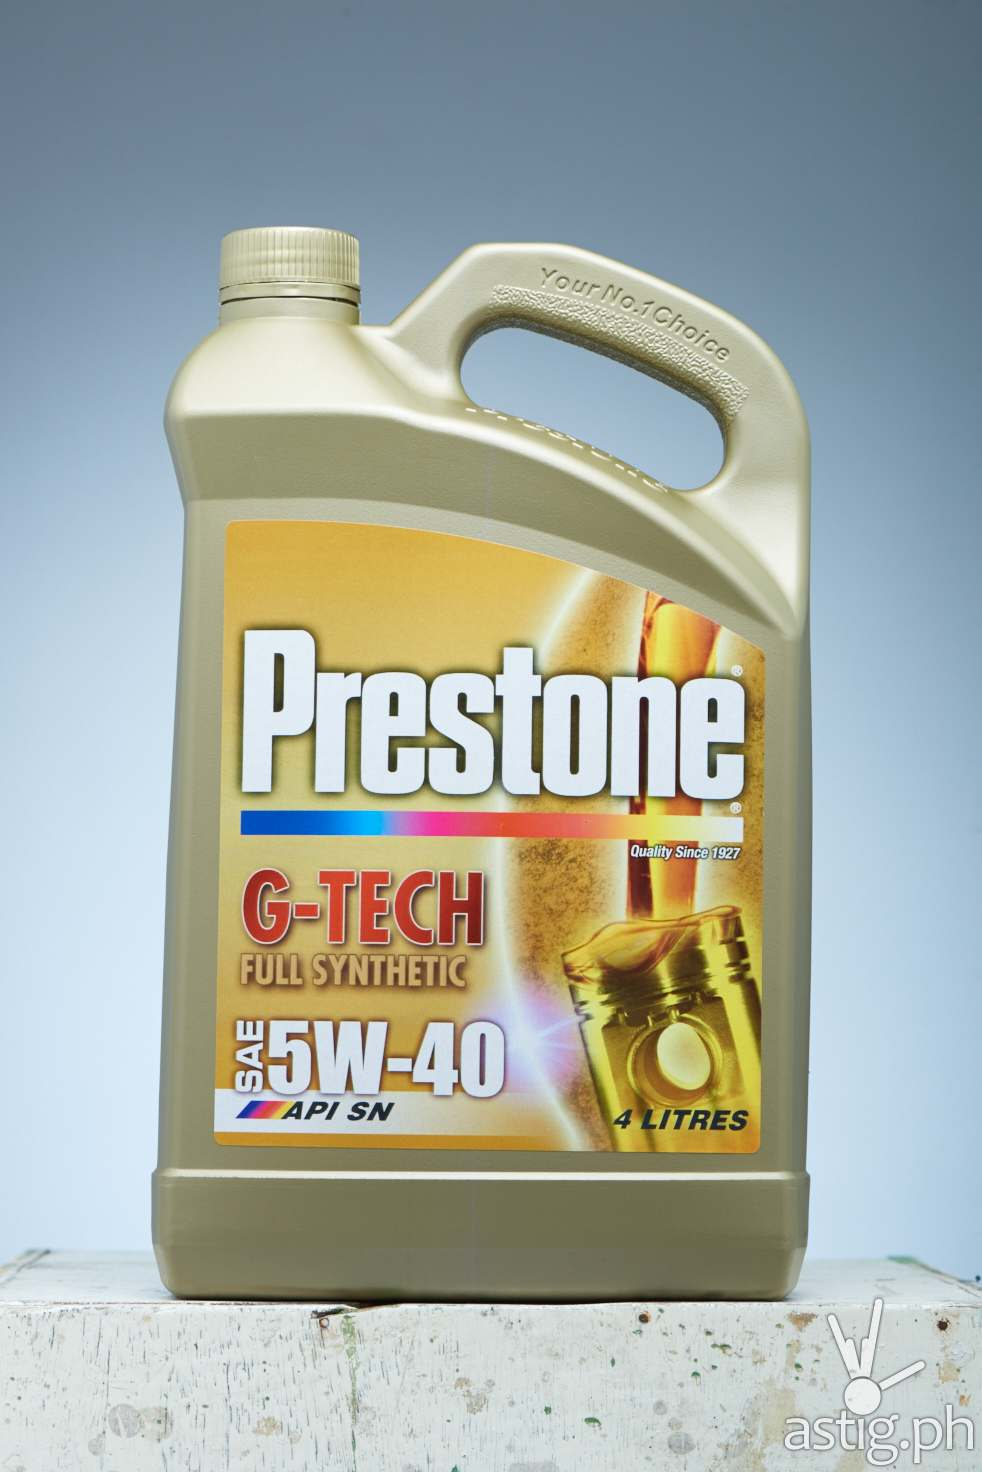 Prestone-Motor-Oil-G-Tech-Full-Syntethic_4-Liters.jpg